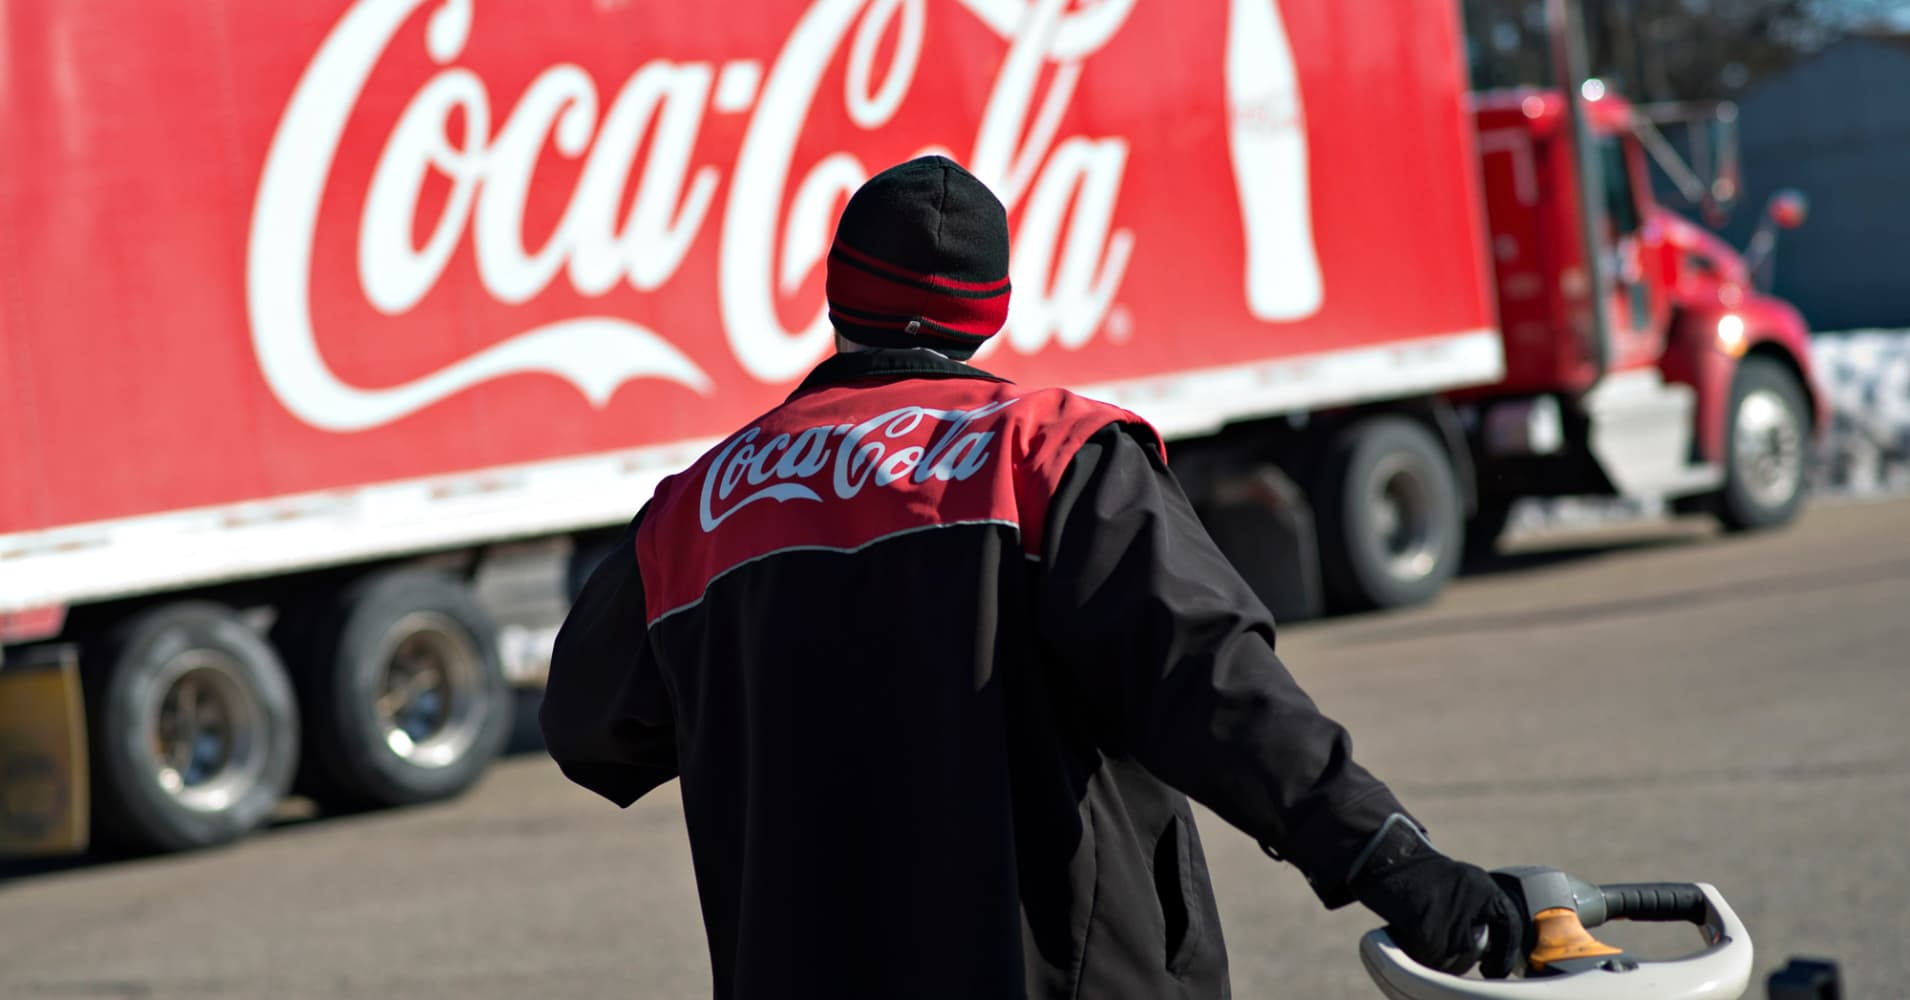 If you invested $1,000 in Coca-Cola 10 years ago, here's how much you'd have now